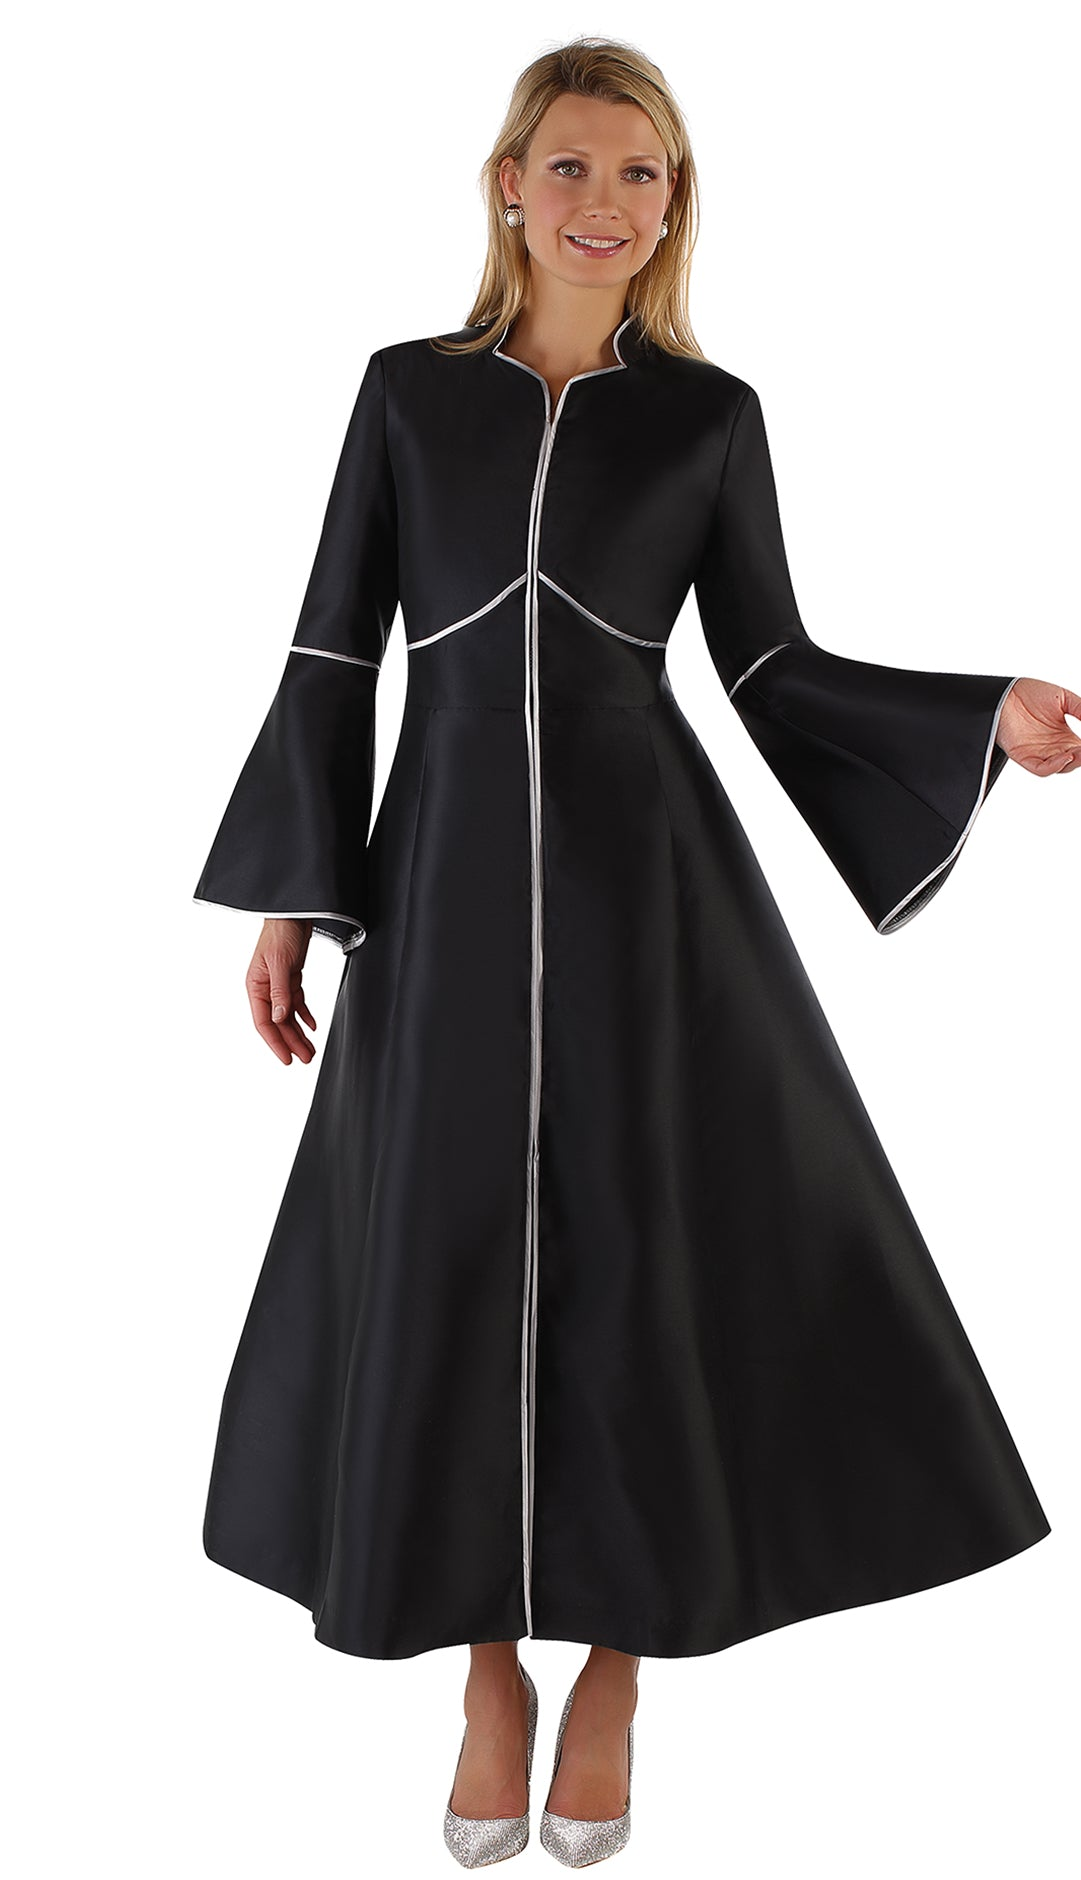 Tally Taylor Church Robe 4731 Black Silver Church Suits For Less